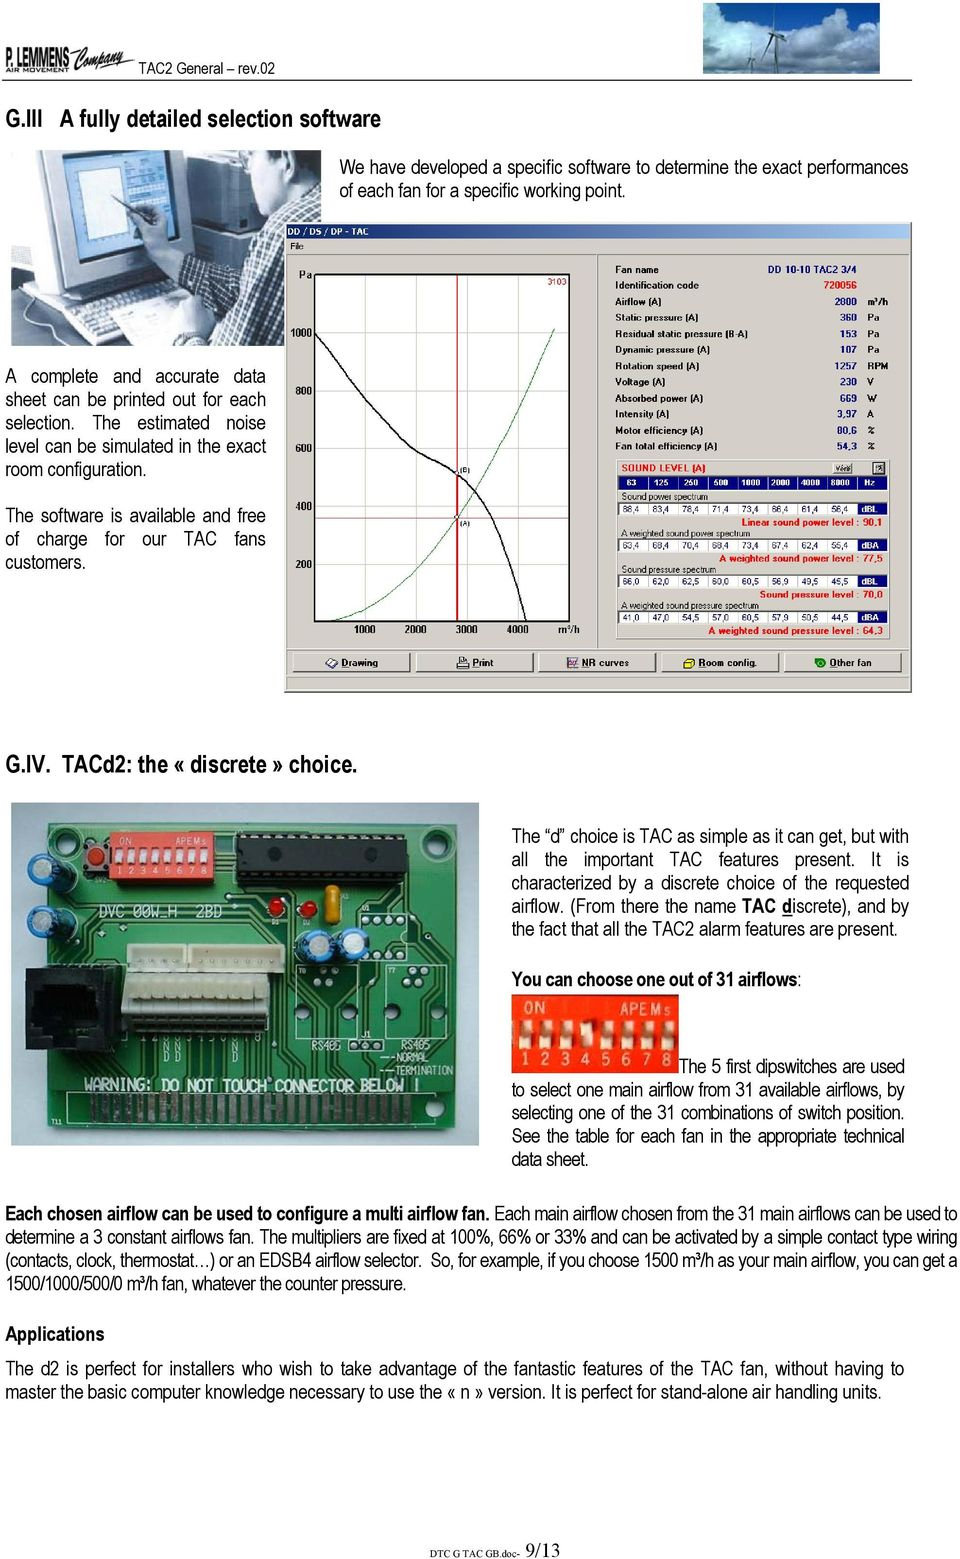 D2 N2 Intelligent High Efficiency Centrifugal Fans Pdf Also Puter Cpu Fan Pinout 4 Wire Together With Ge Dryer Timer Wiring The Software Is Available And Free Of Charge For Our Tac Customers G